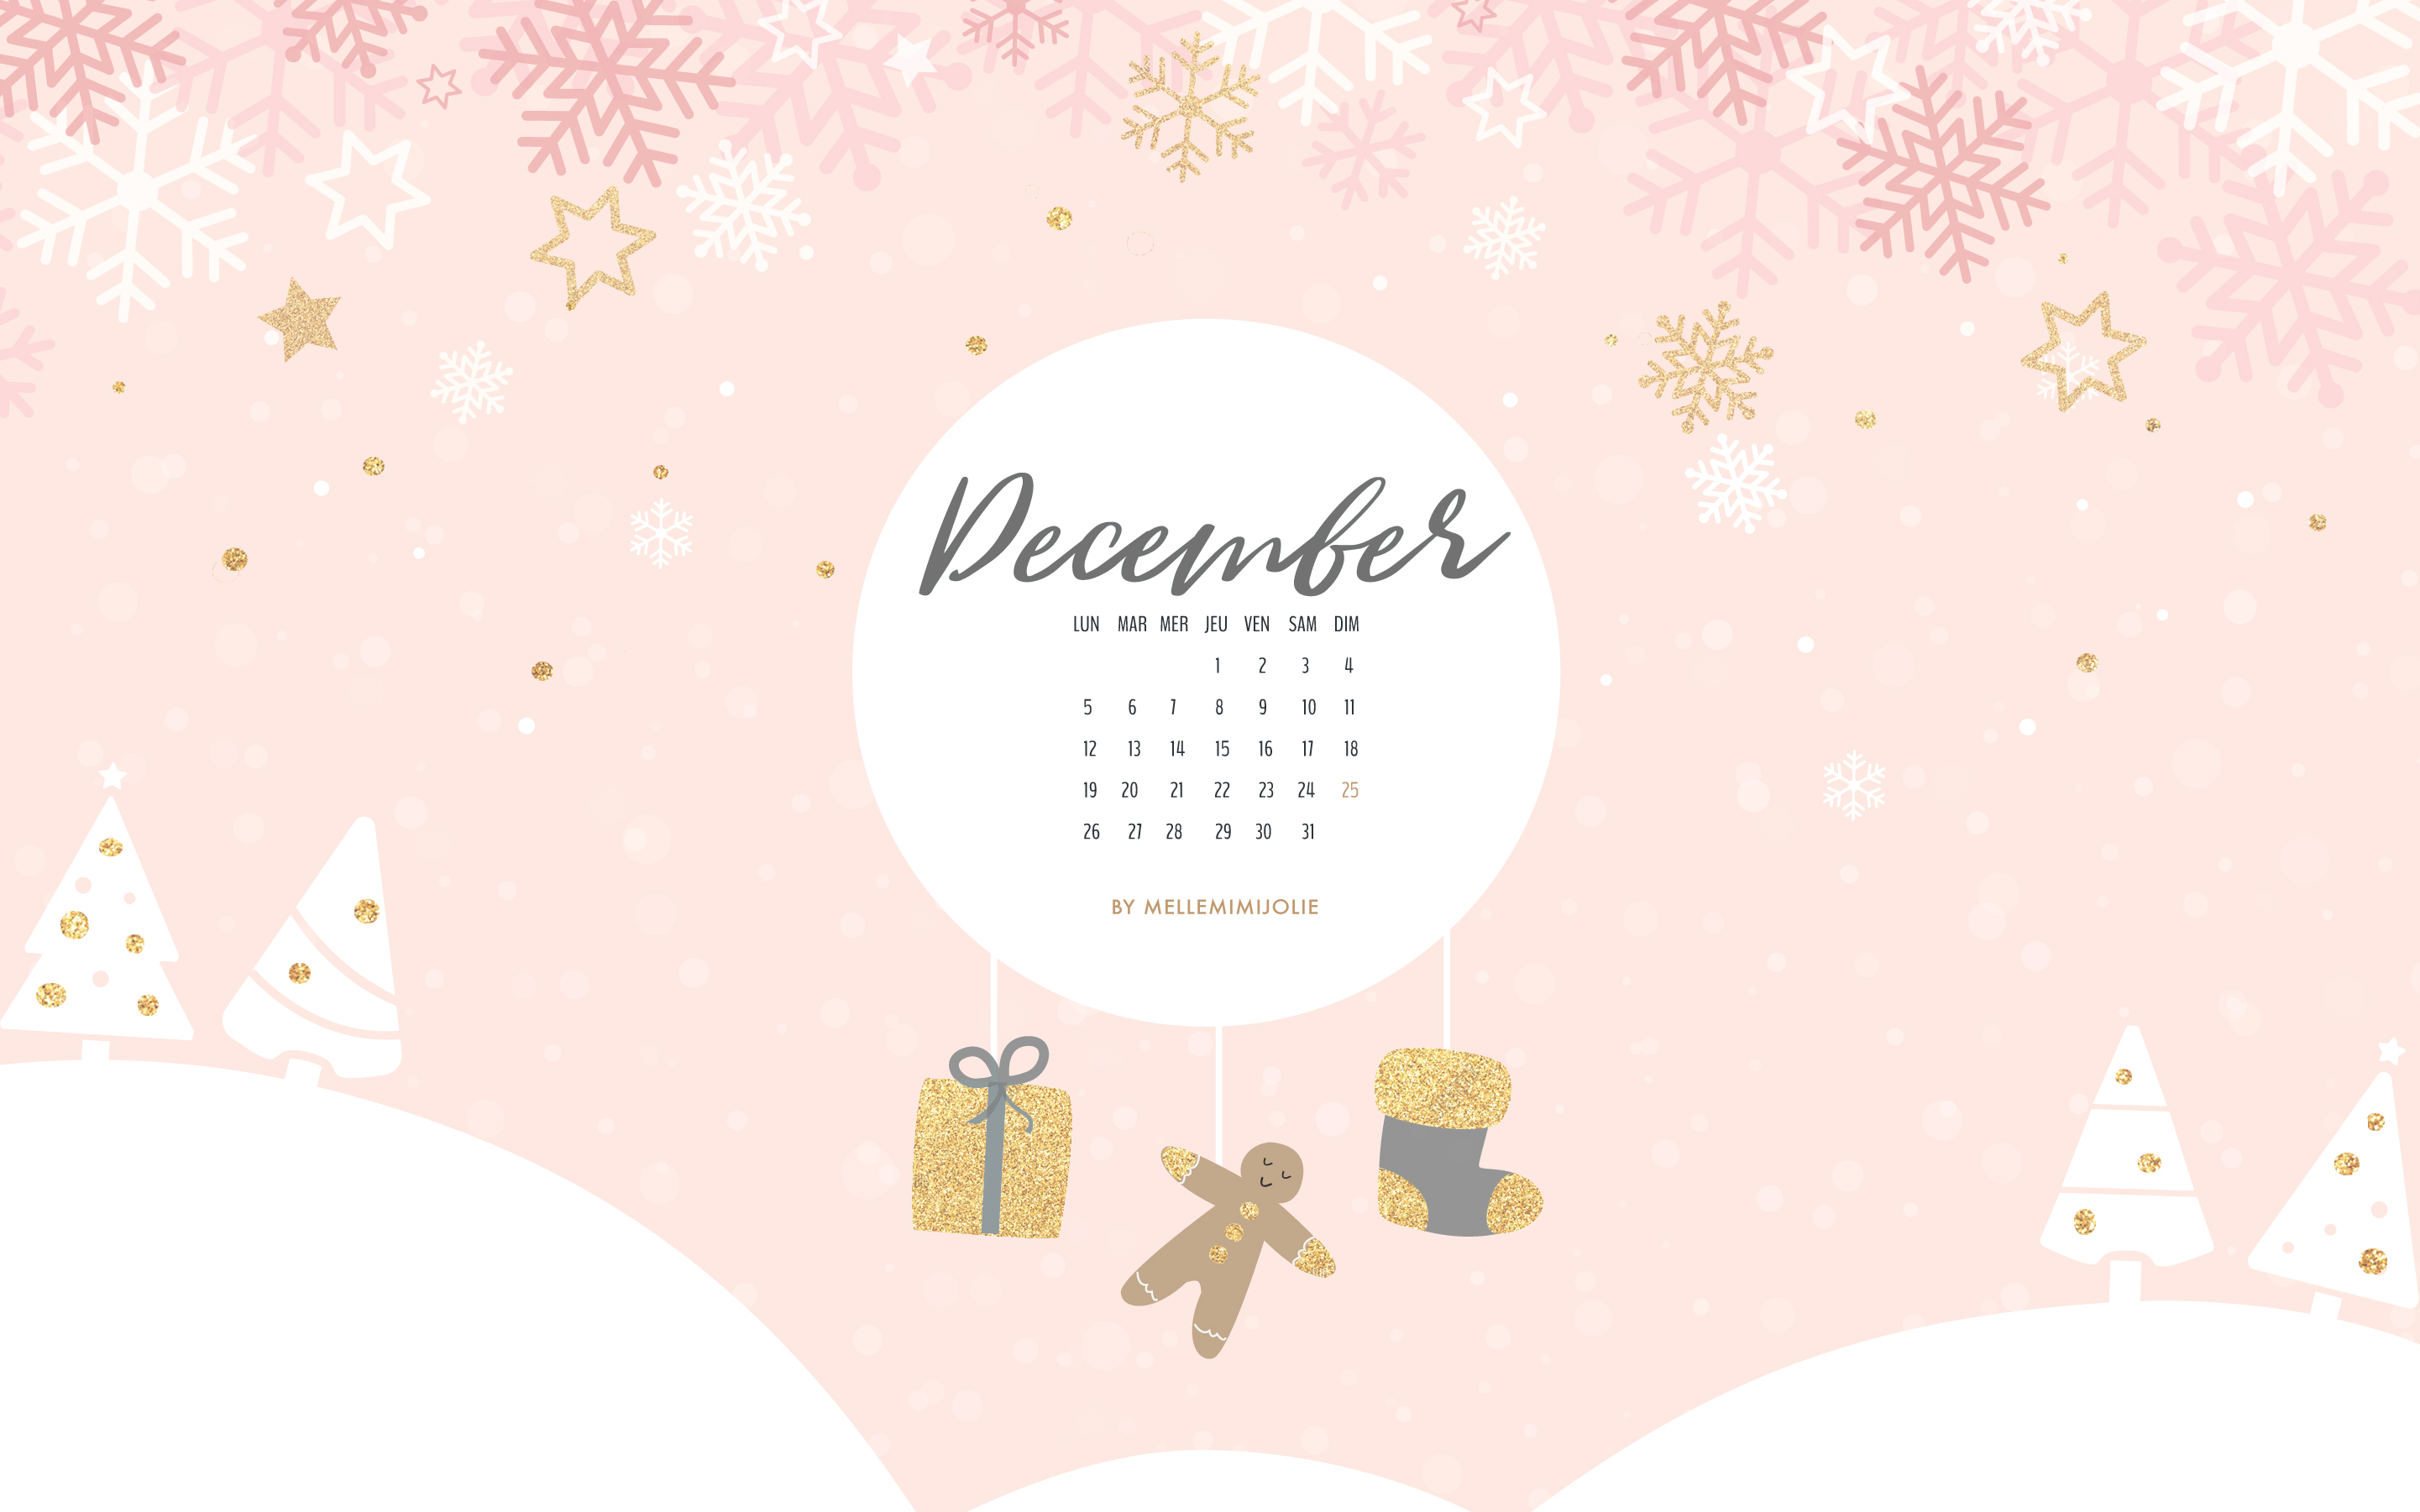 christmas-wallpaper-decembre-pink